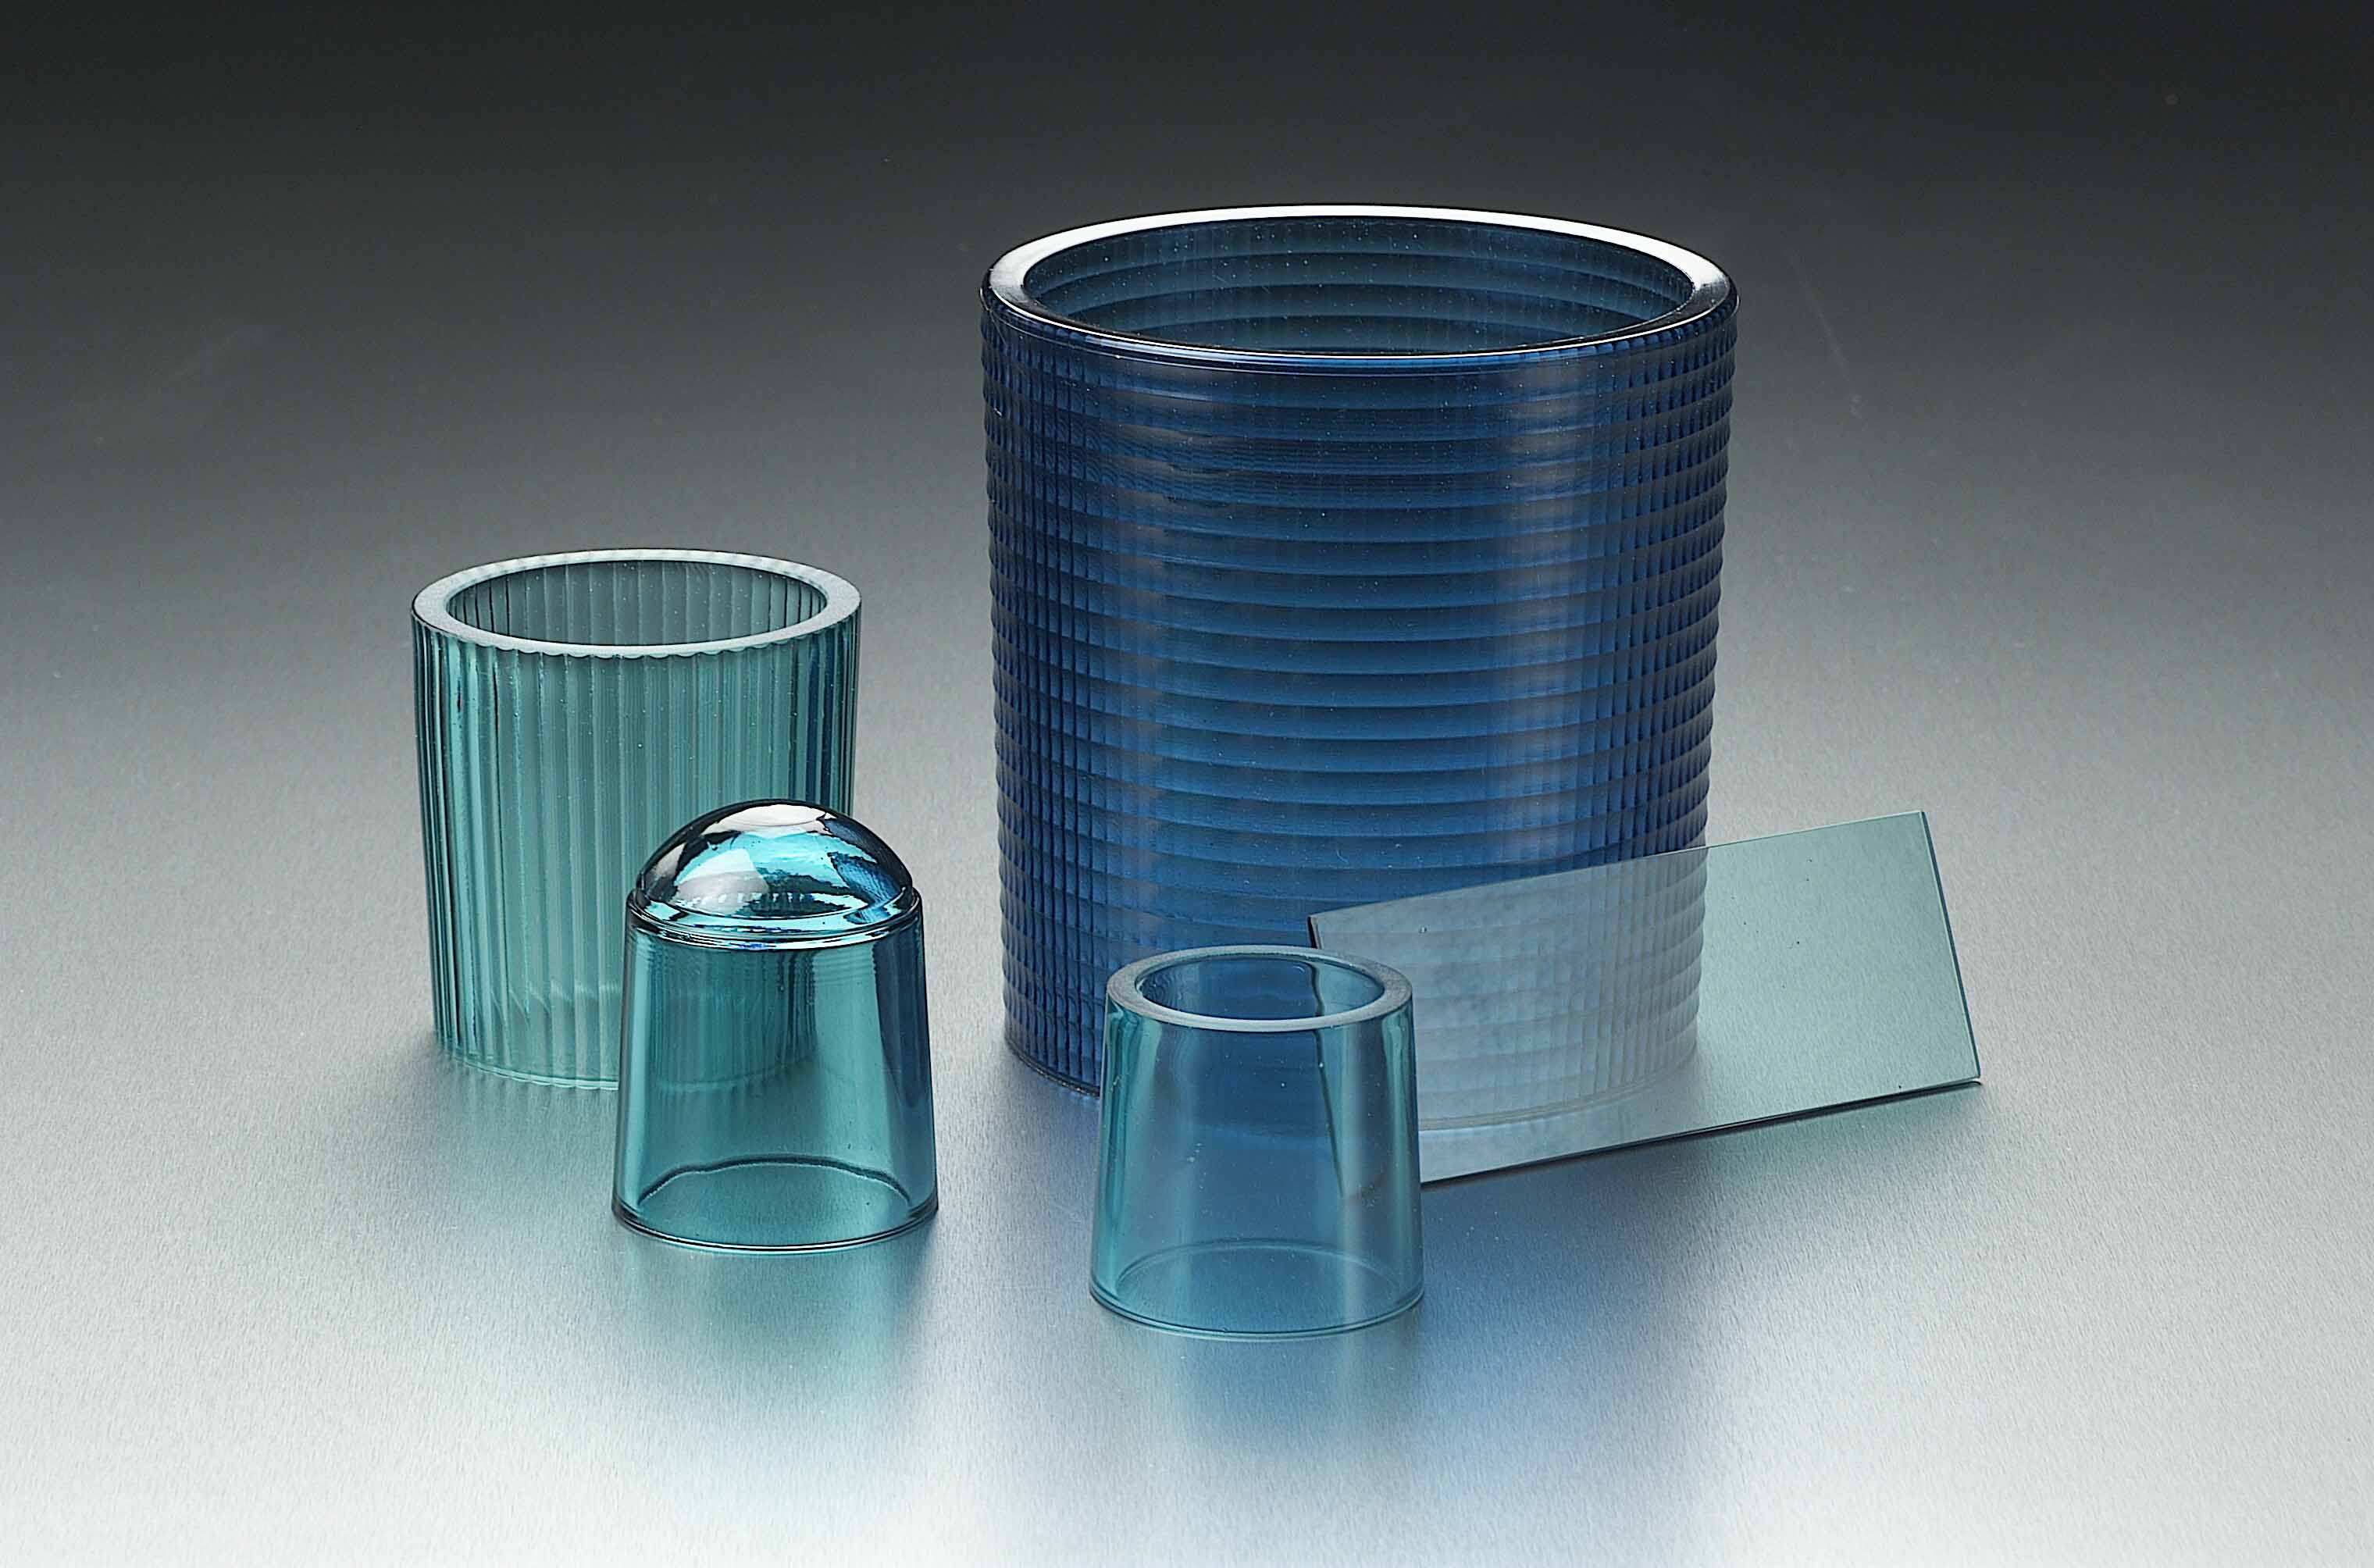 How Are Technical Glass Products Finding Their Way Into The Medical Industry?